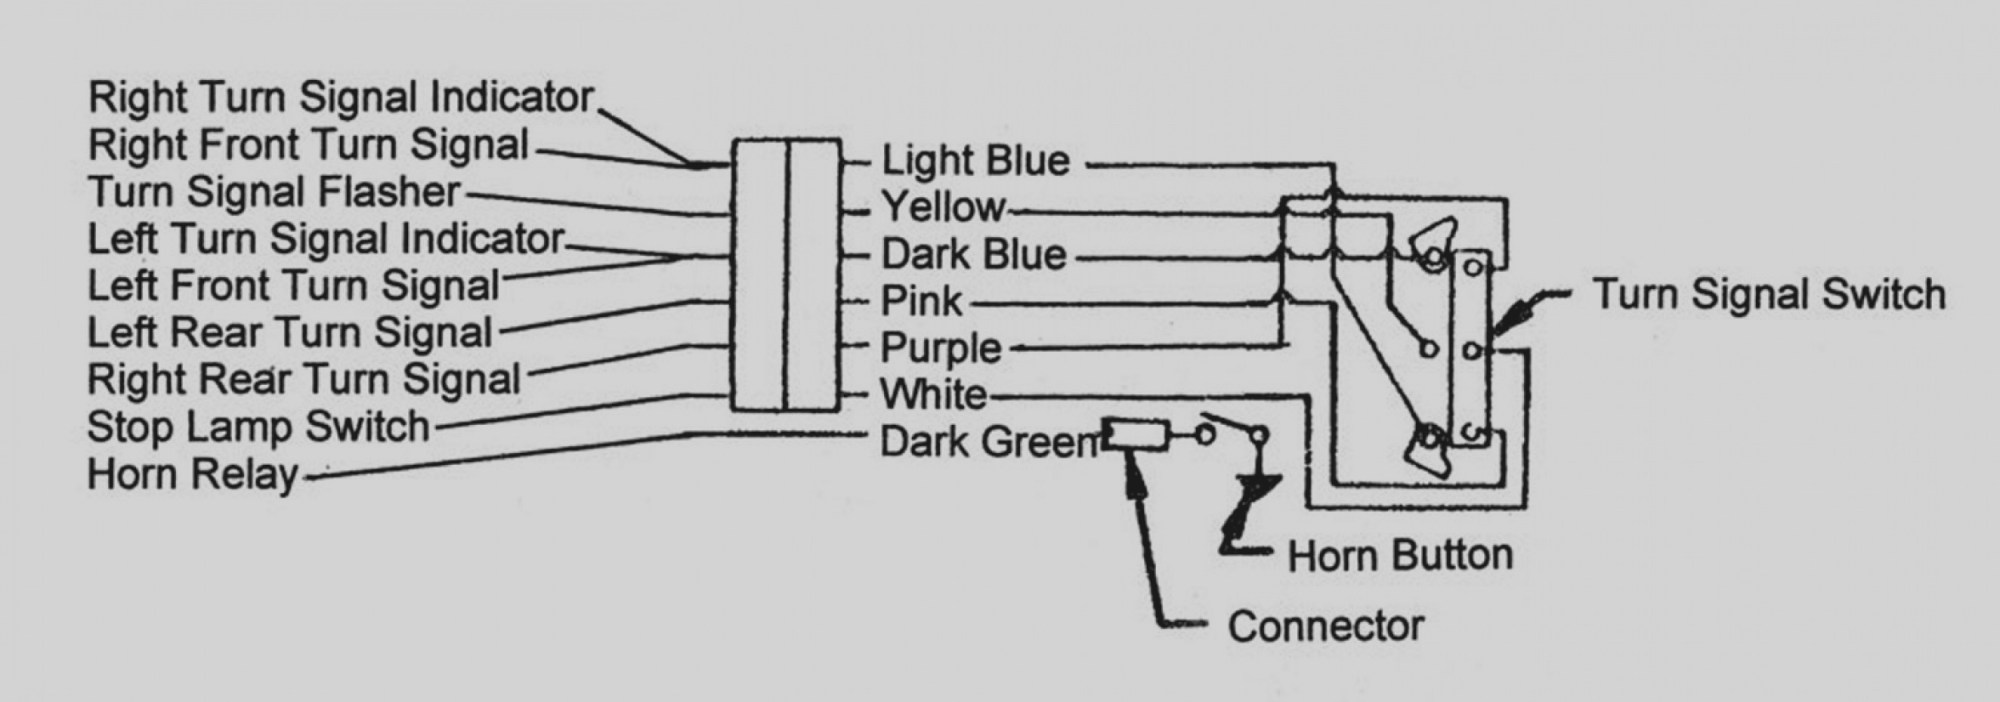 hight resolution of 1974 jeep wiring diagram wiring diagram centrecj5 turn signal wiring schematic wiring diagram filtercj5 turn signal